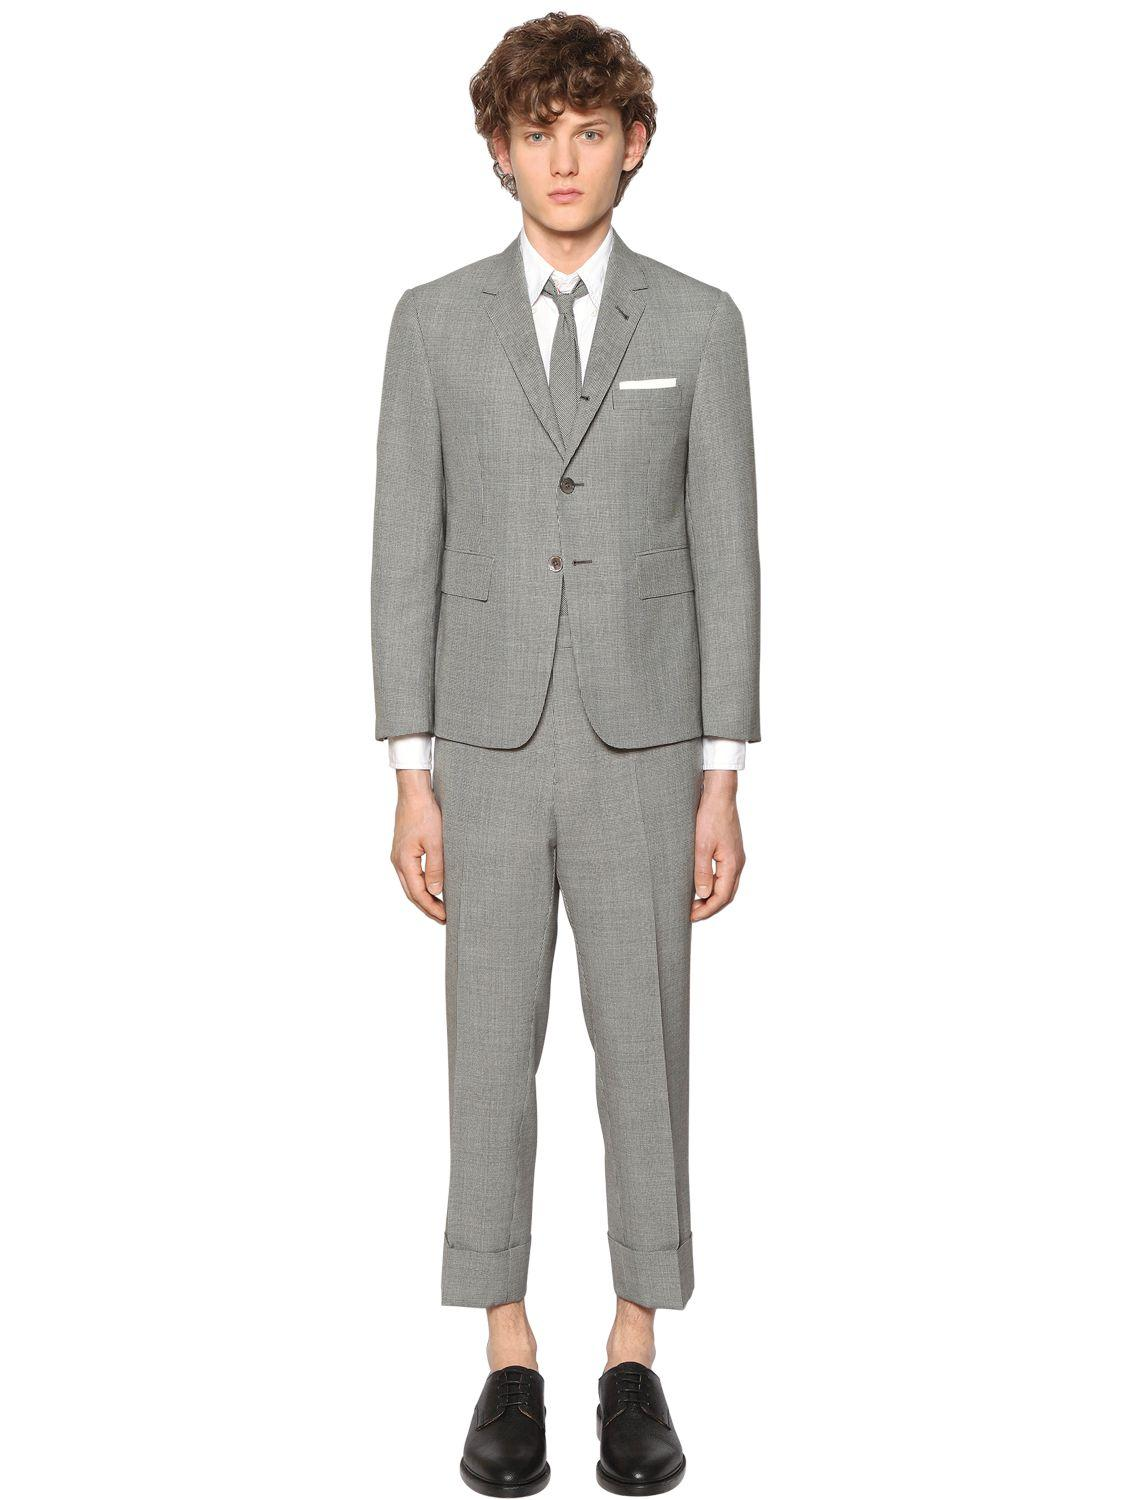 Thom browne Micro Houndstooth Light Wool Suit in Gray for Men | Lyst